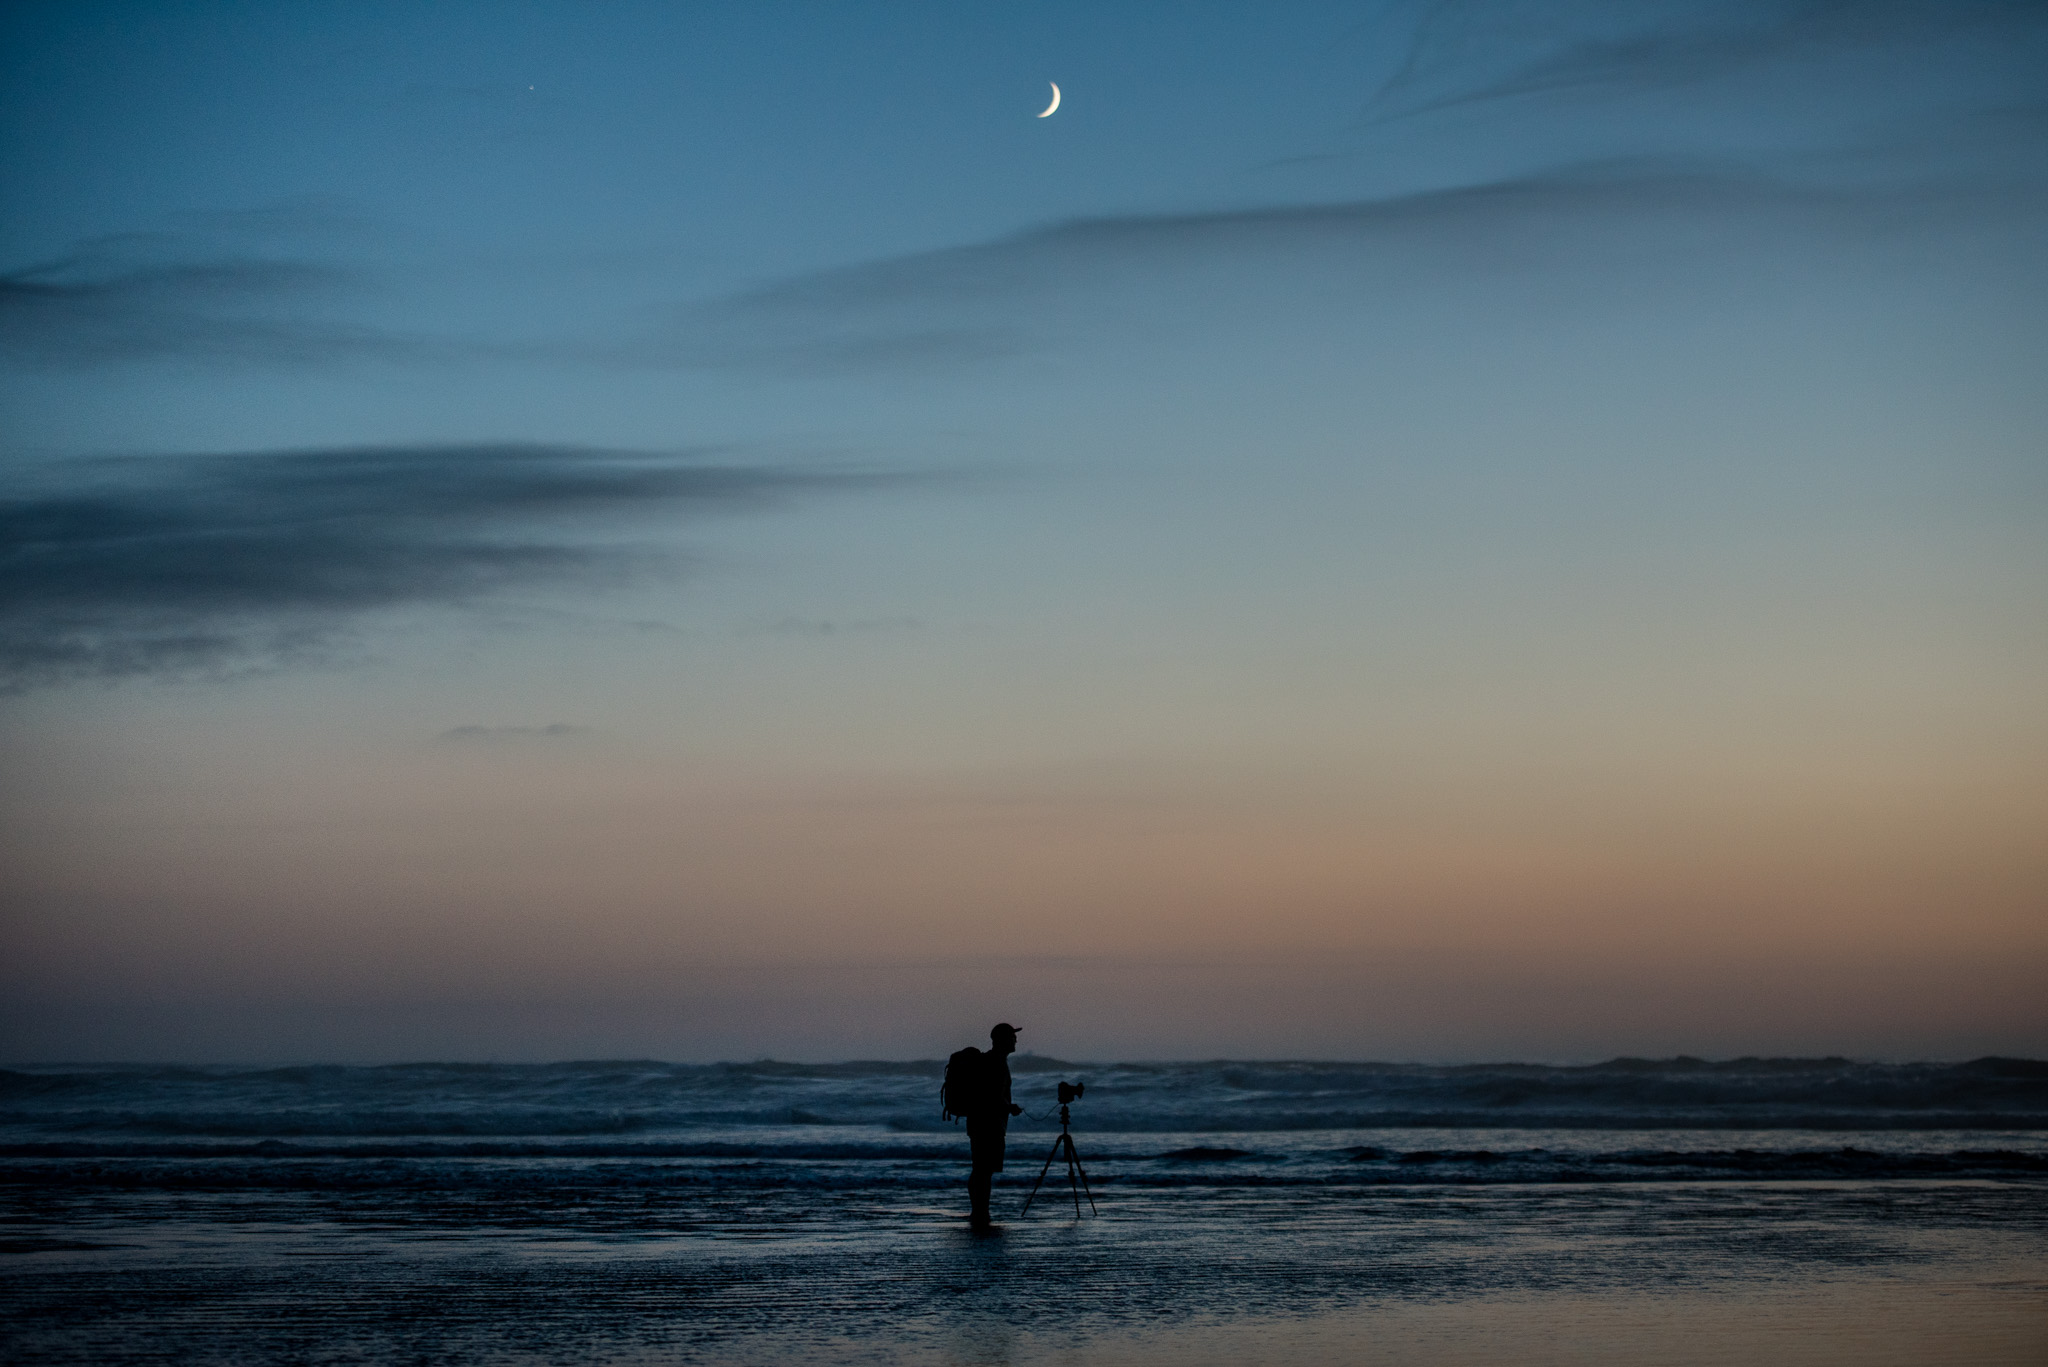 A neat portrait of Larryn standing in the water after sunset with the moon above him, getting his angle at Cannon Beach.